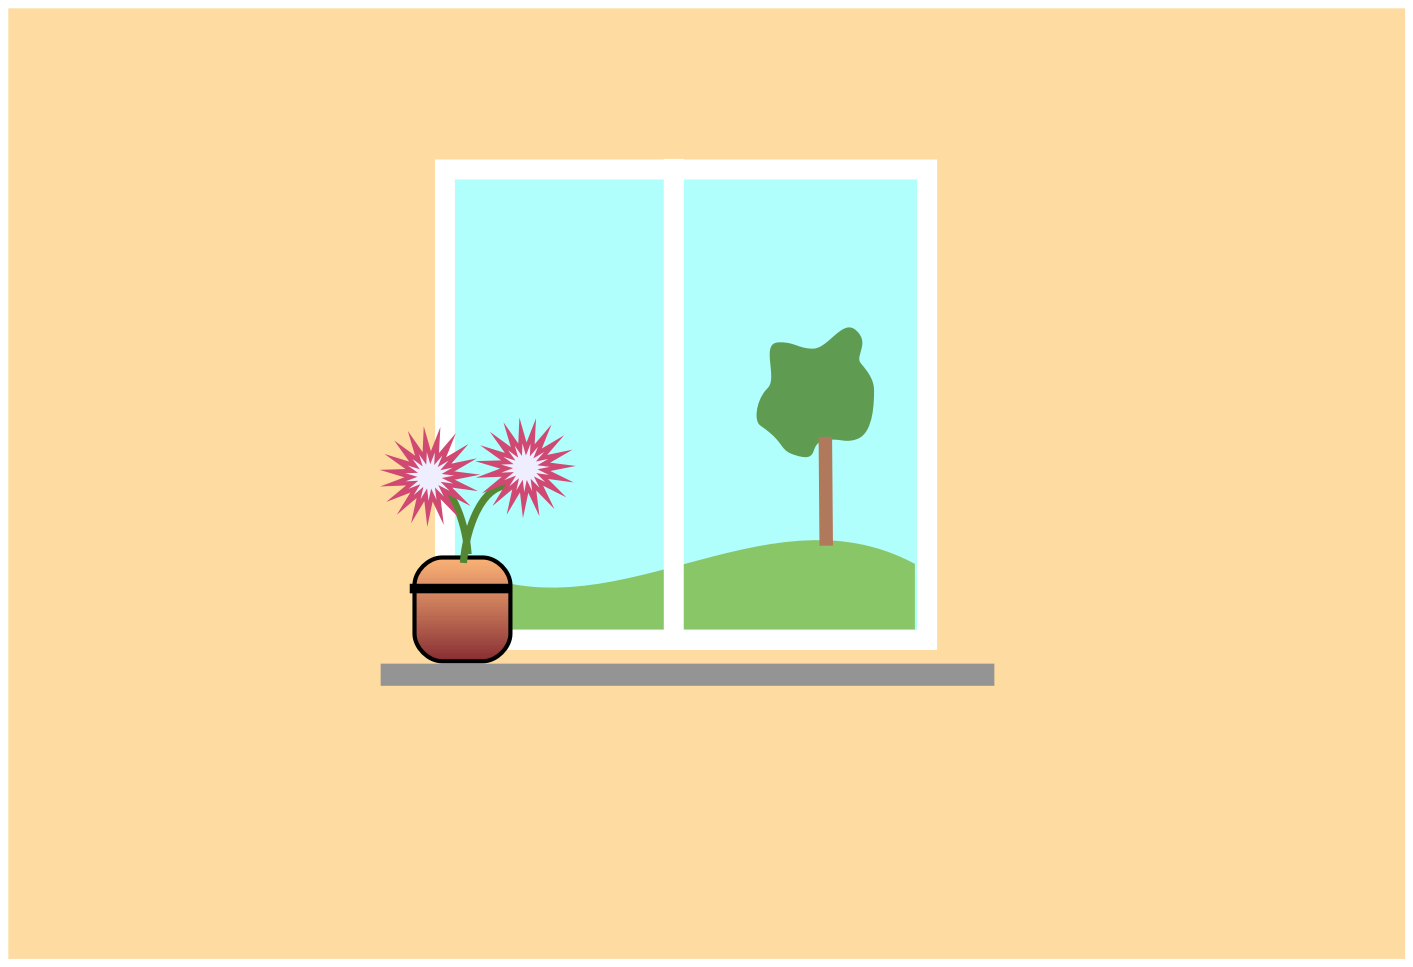 Window clipart classroom window Images Clipart Panda And Free